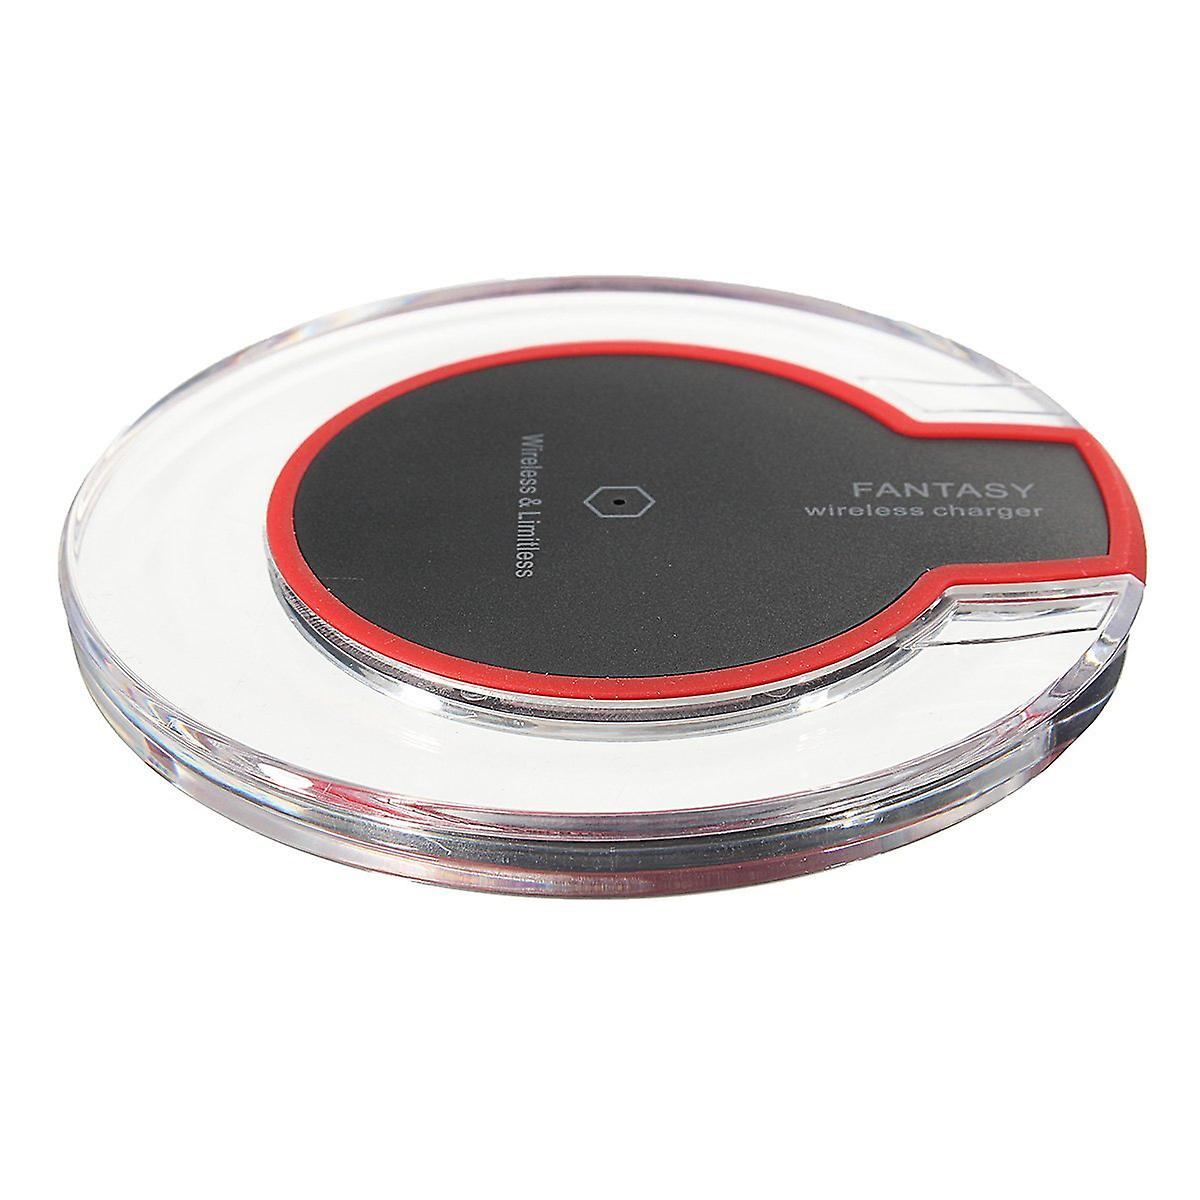 Qi wireless fast charging desktop mobile phone charger pad